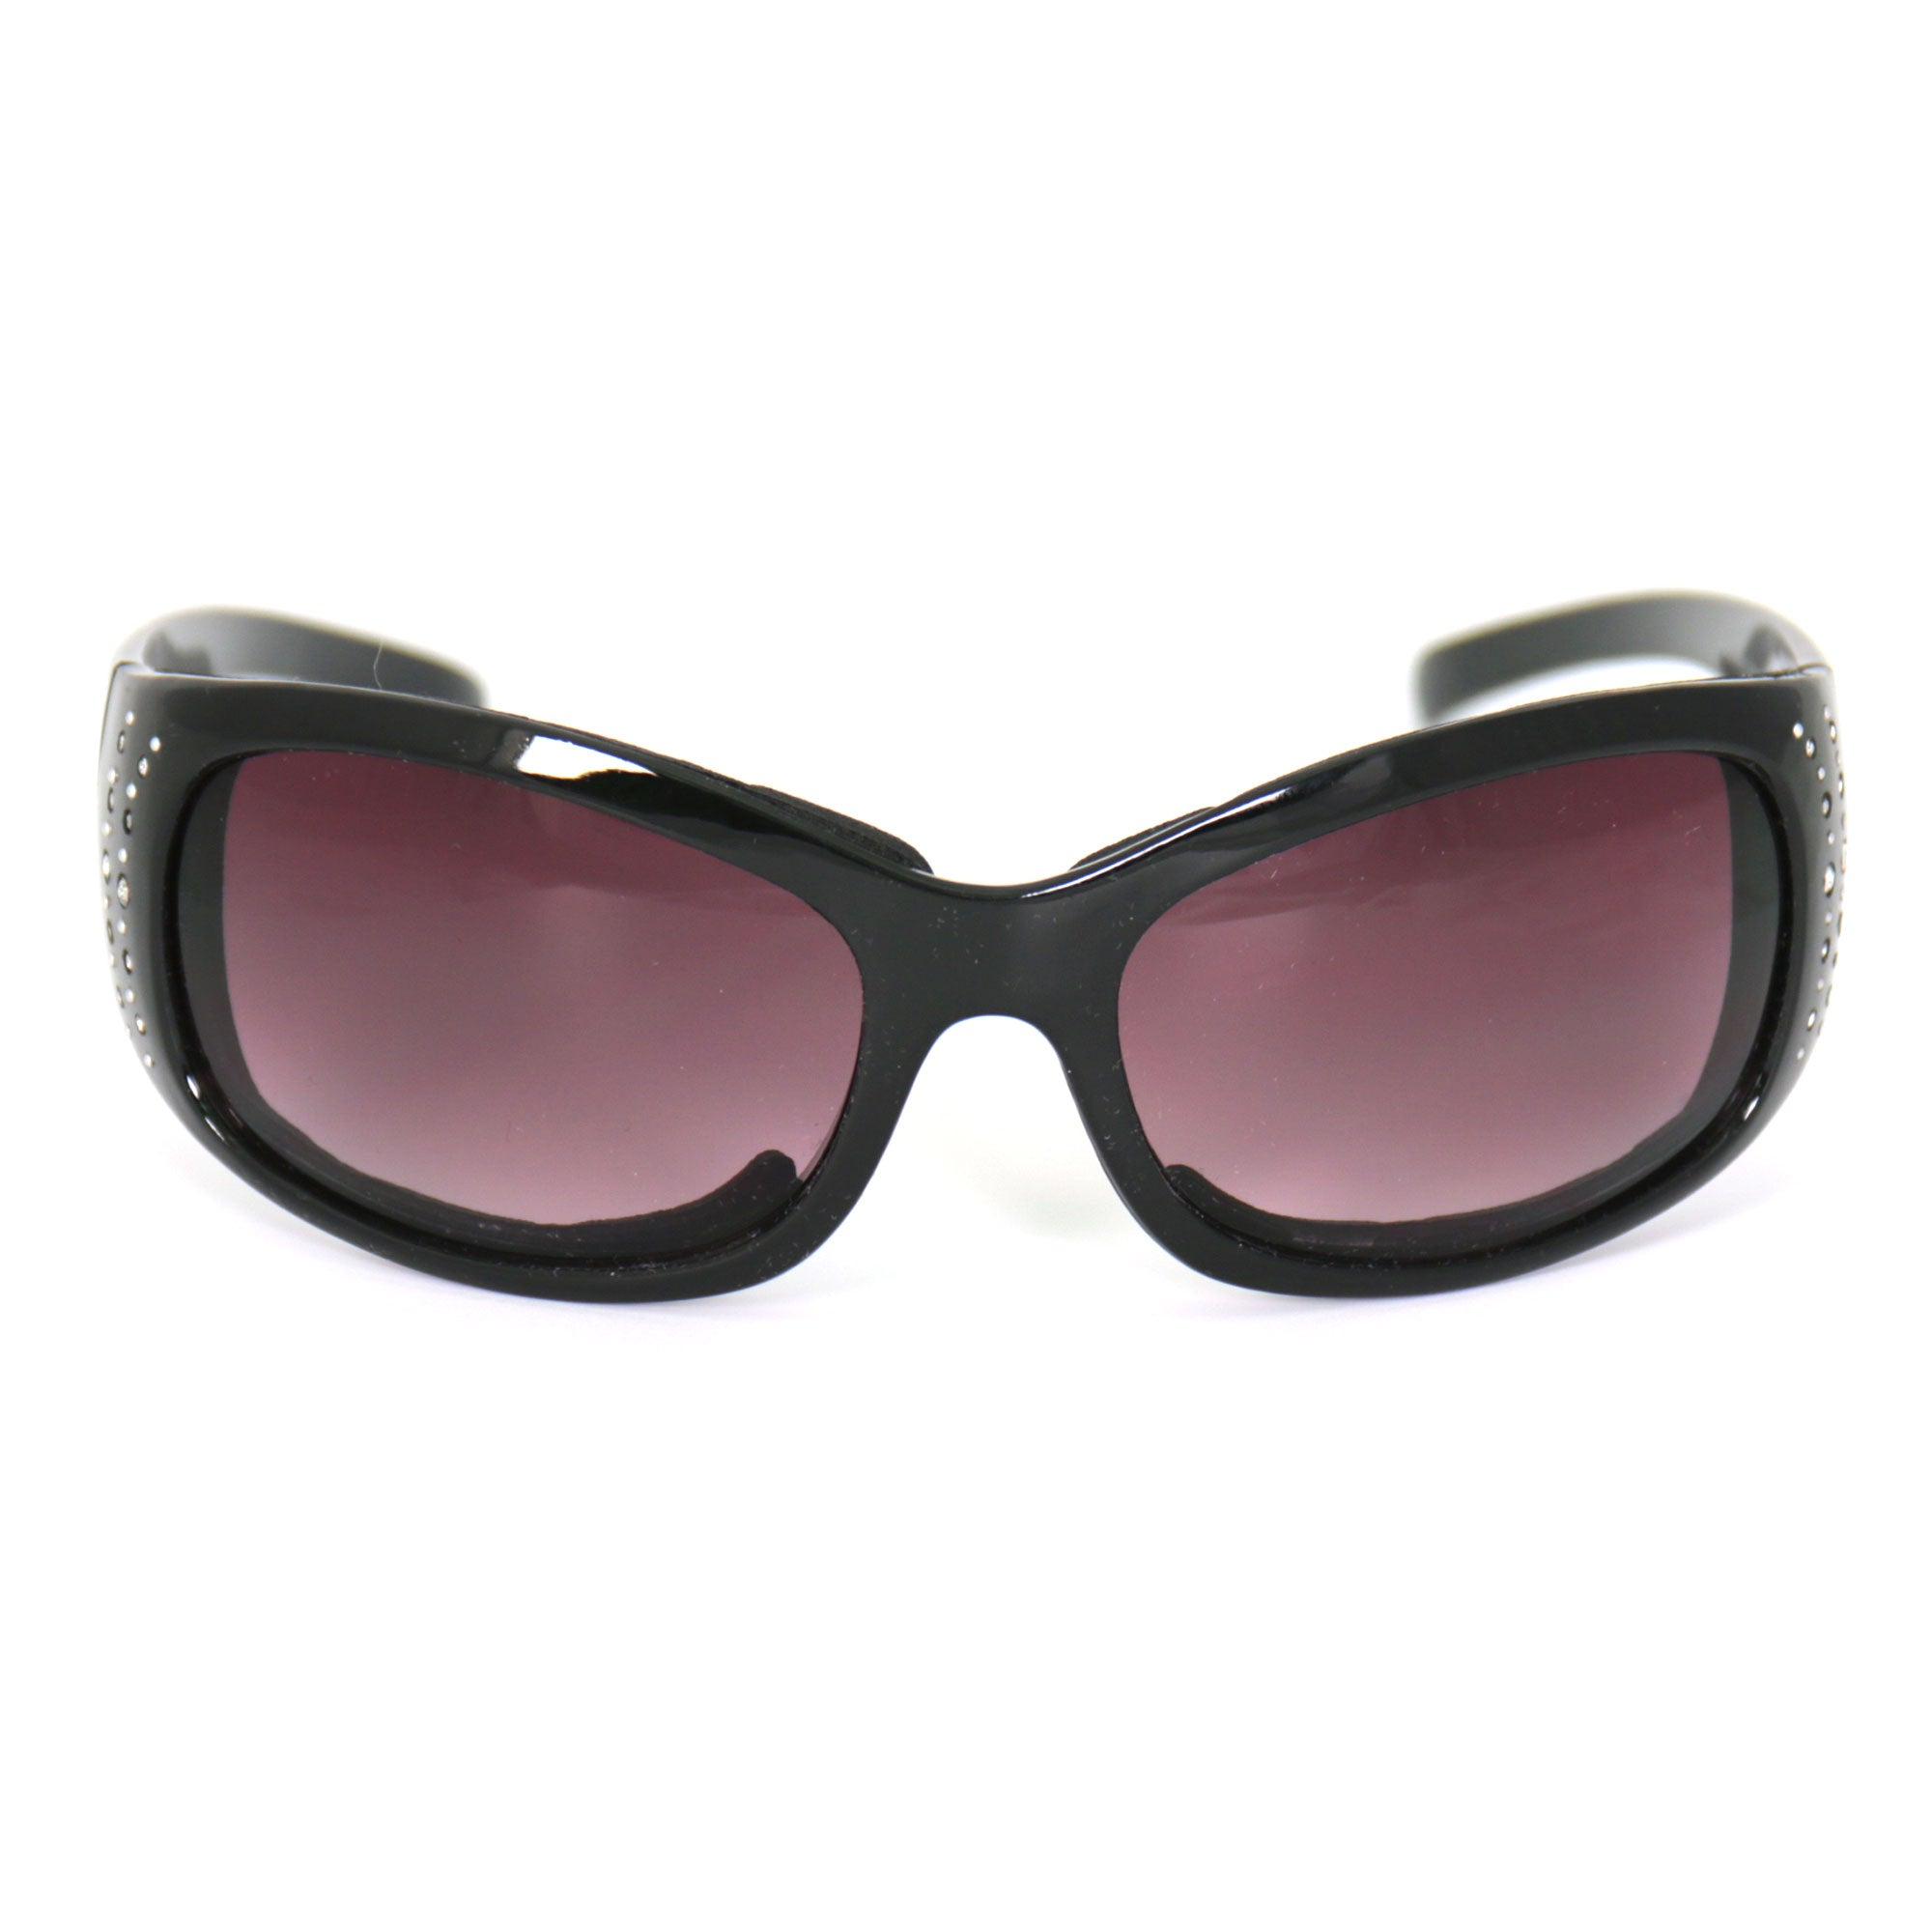 Hot Leathers Bling Sunglasses with Foam Padding and Smoke Lenses